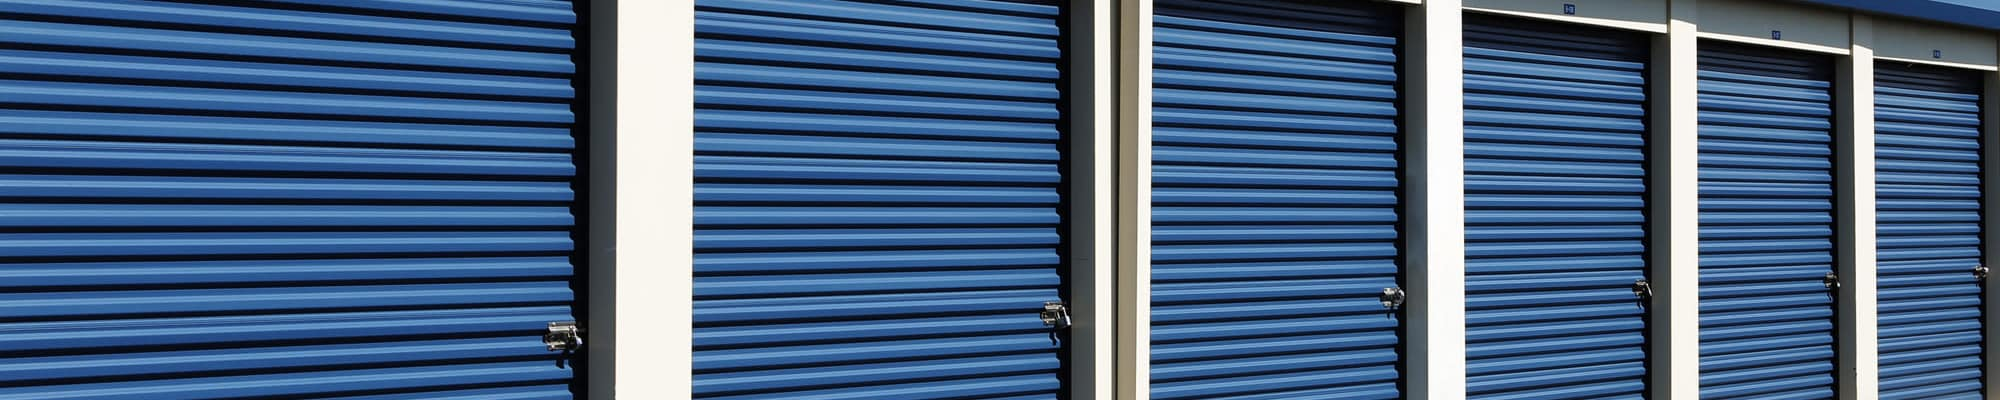 Self storage unit sizes and prices at Midgard Self Storage in Statesboro, Georgia